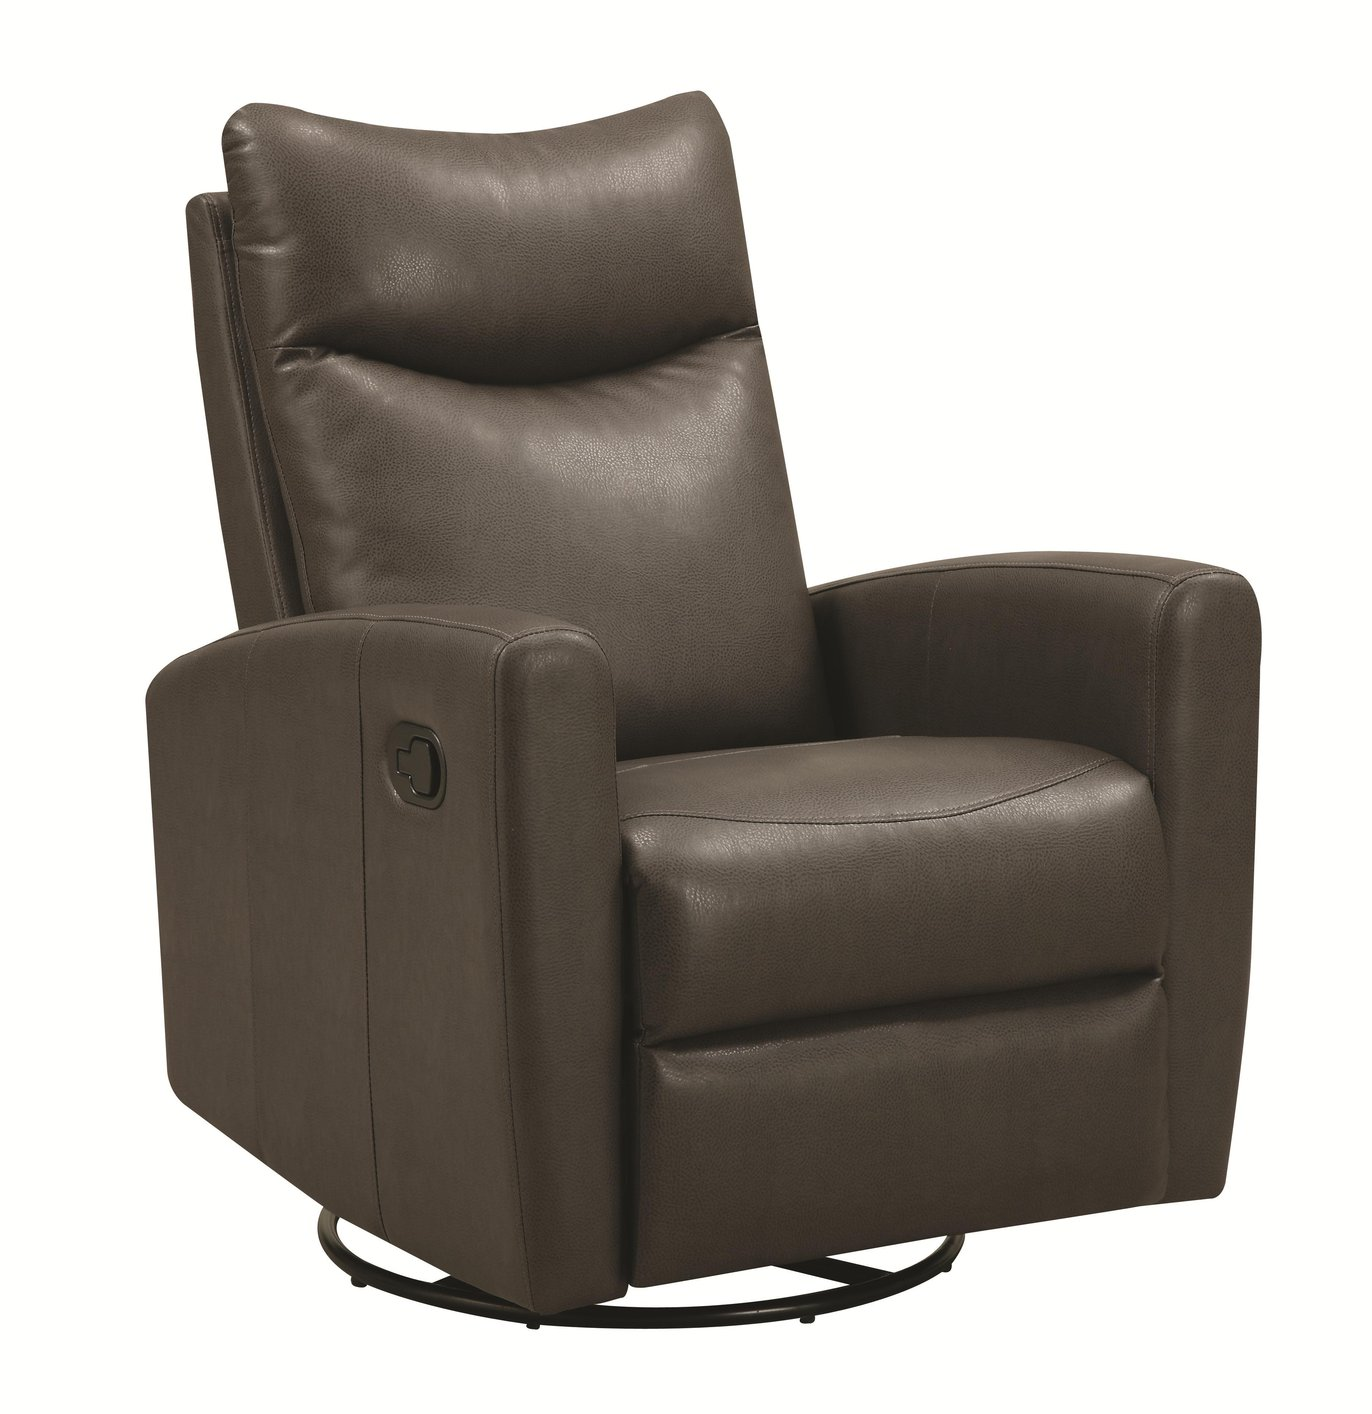 Coaster 600035 Grey Leather Swivel Recliner